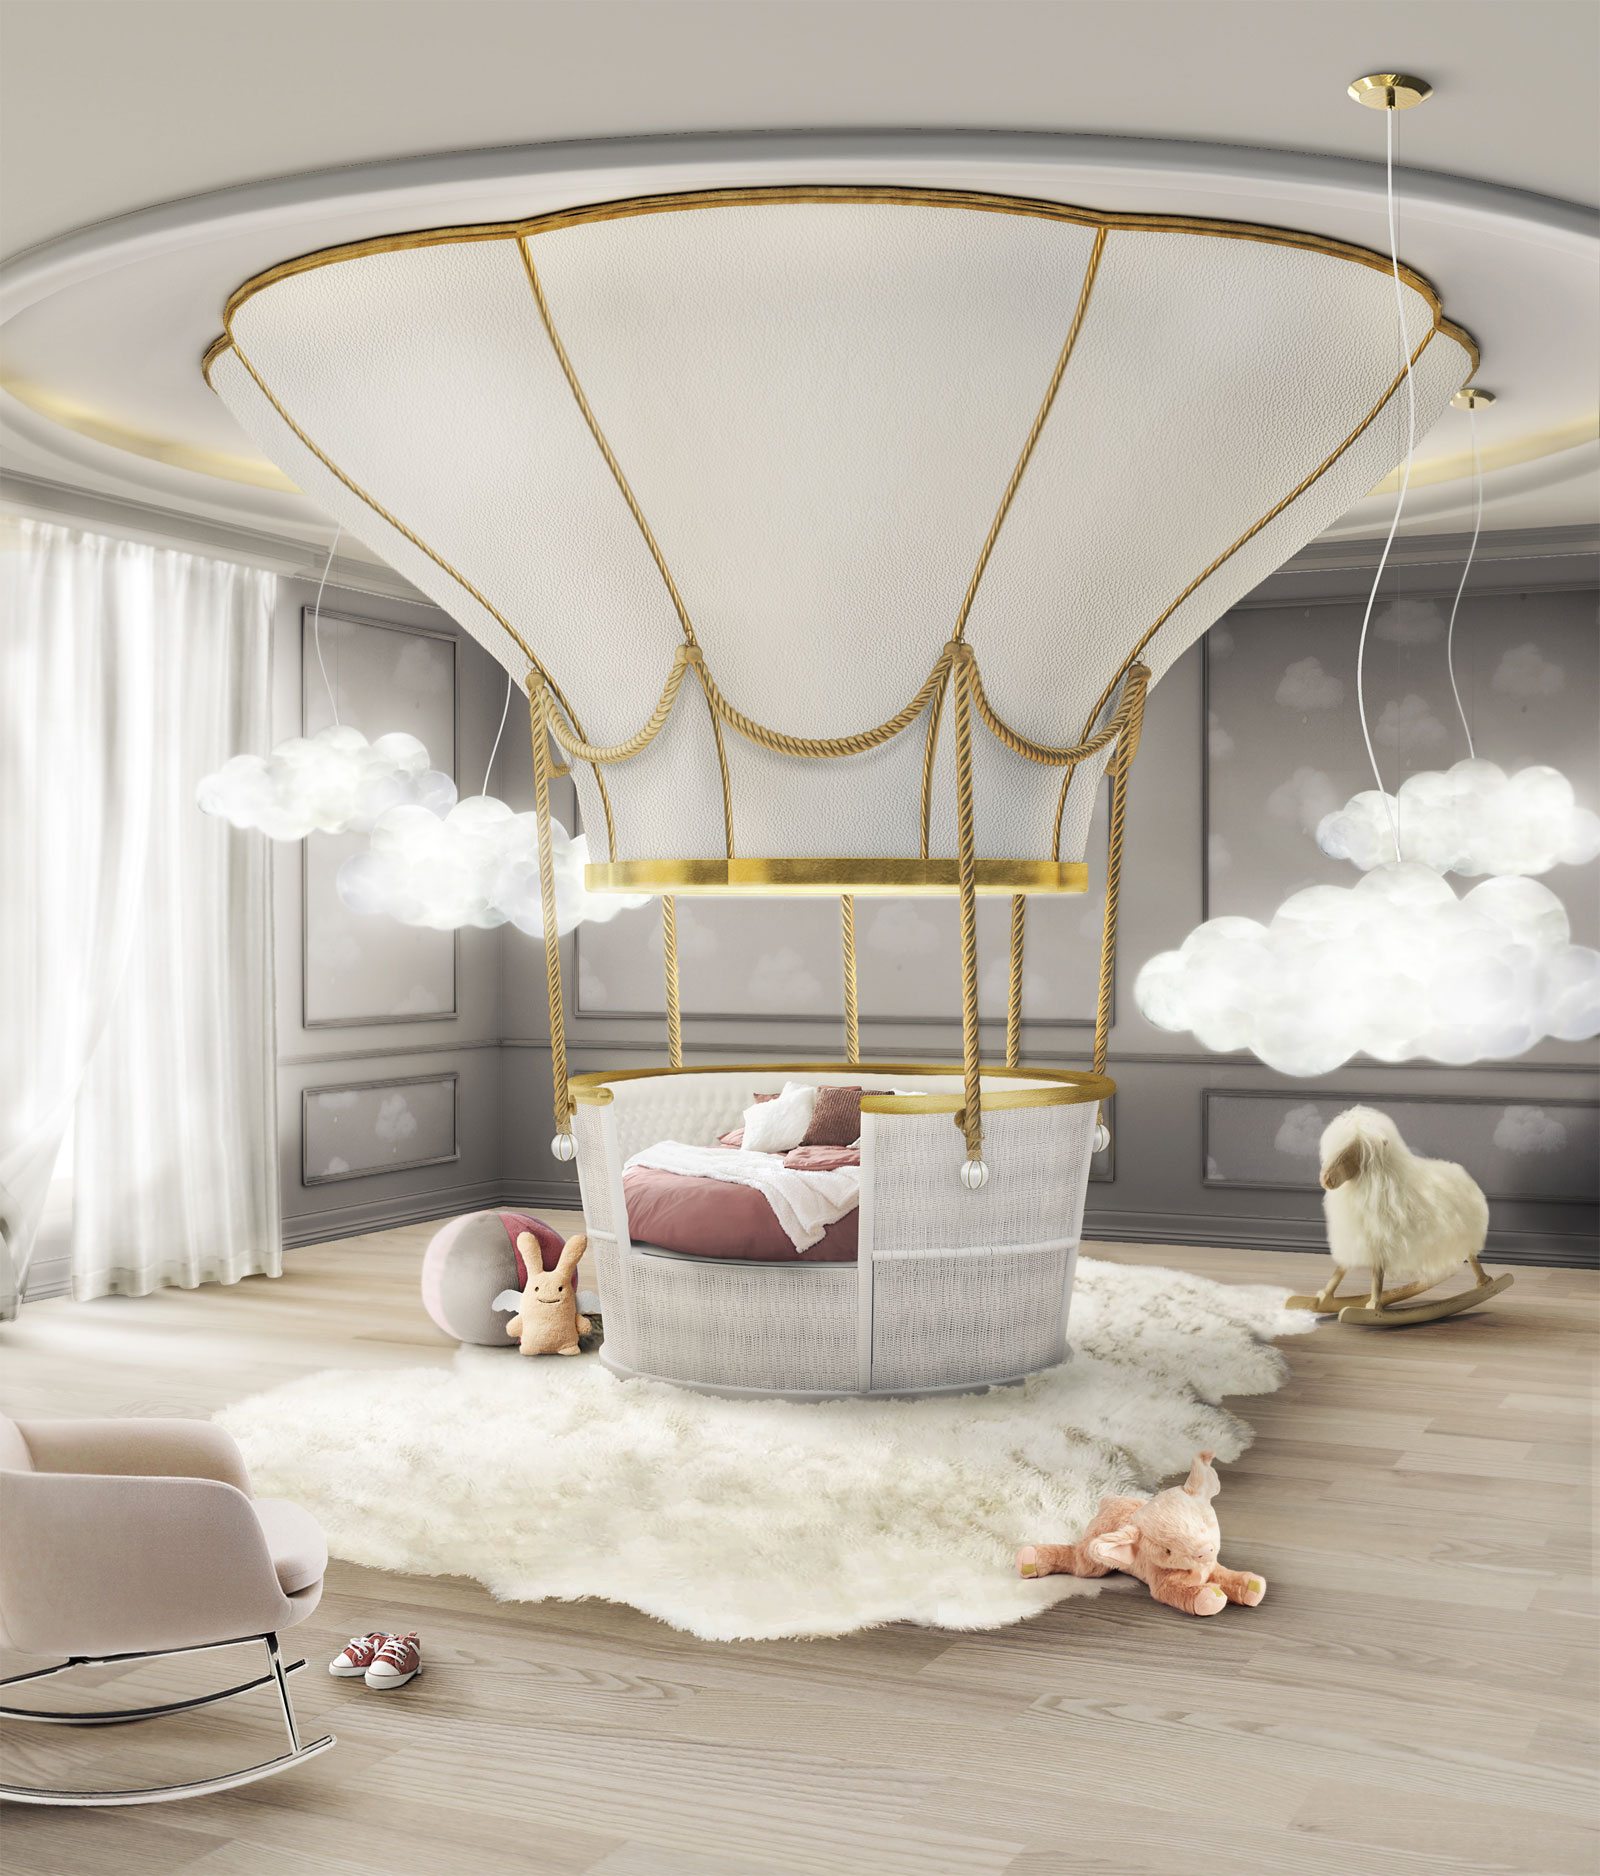 Three amazing beds for children that will make adults jealous for Kids bed design